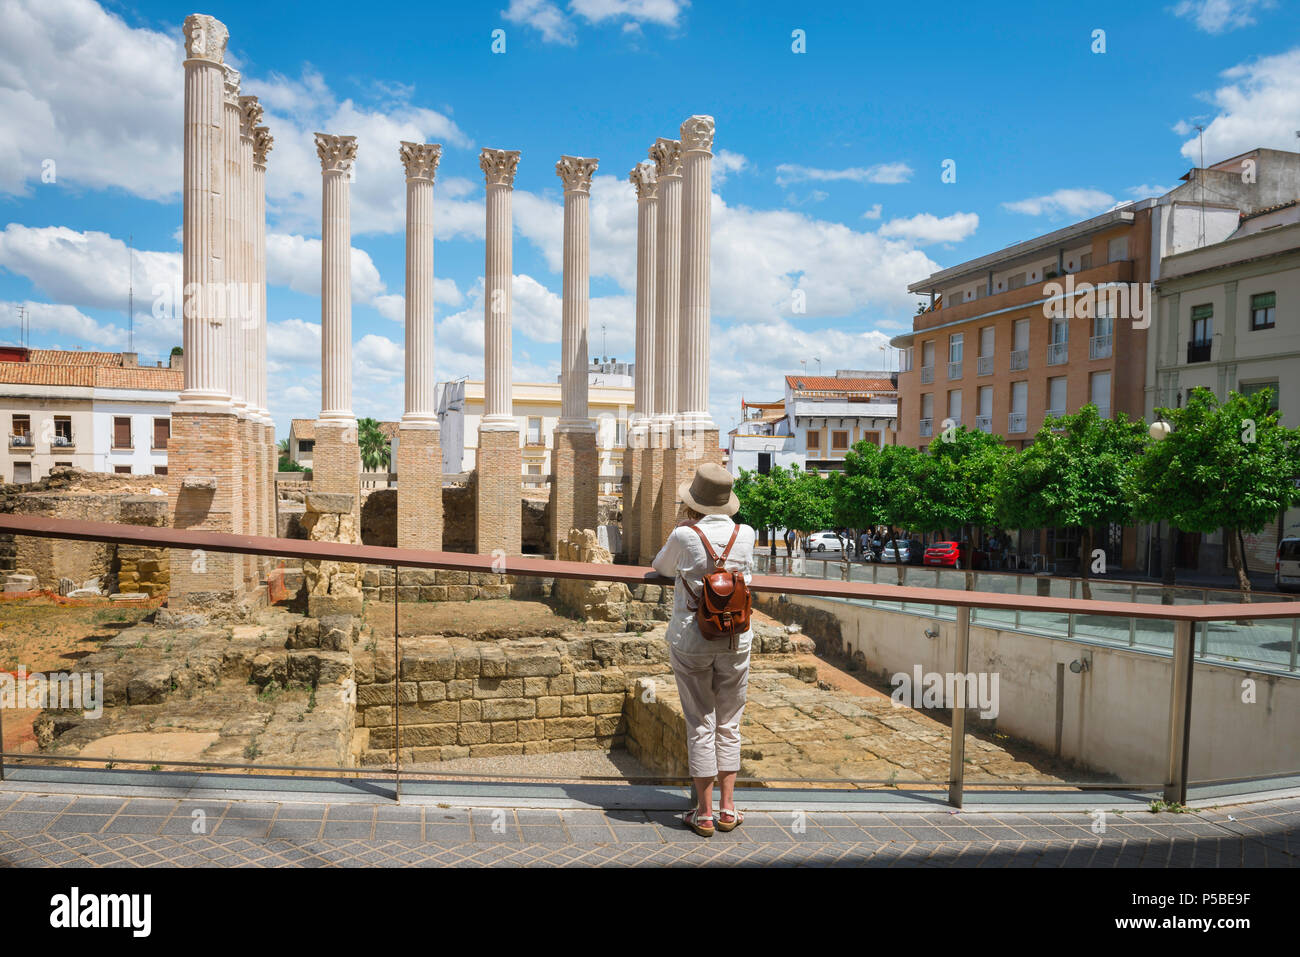 Rear view of a mature middle aged woman solo traveler visiting the ruins of an ancient Roman temple in Cordoba, Andalucia, Spain, - Stock Image